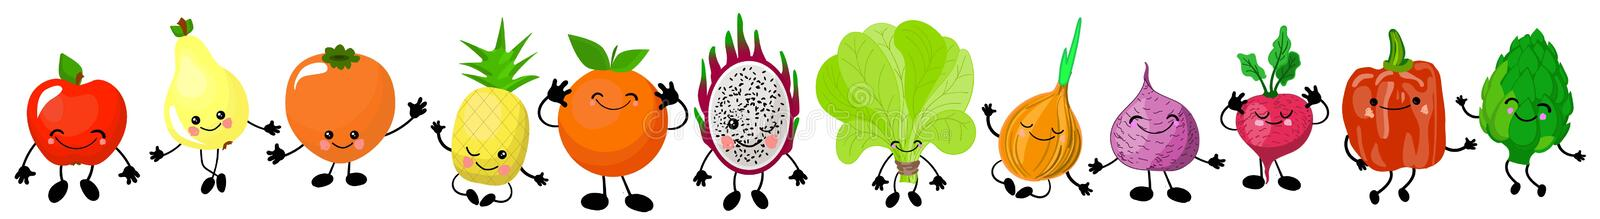 Cute characters vegetables and fruits with liu, eyes and hands. Healthy food stock illustration